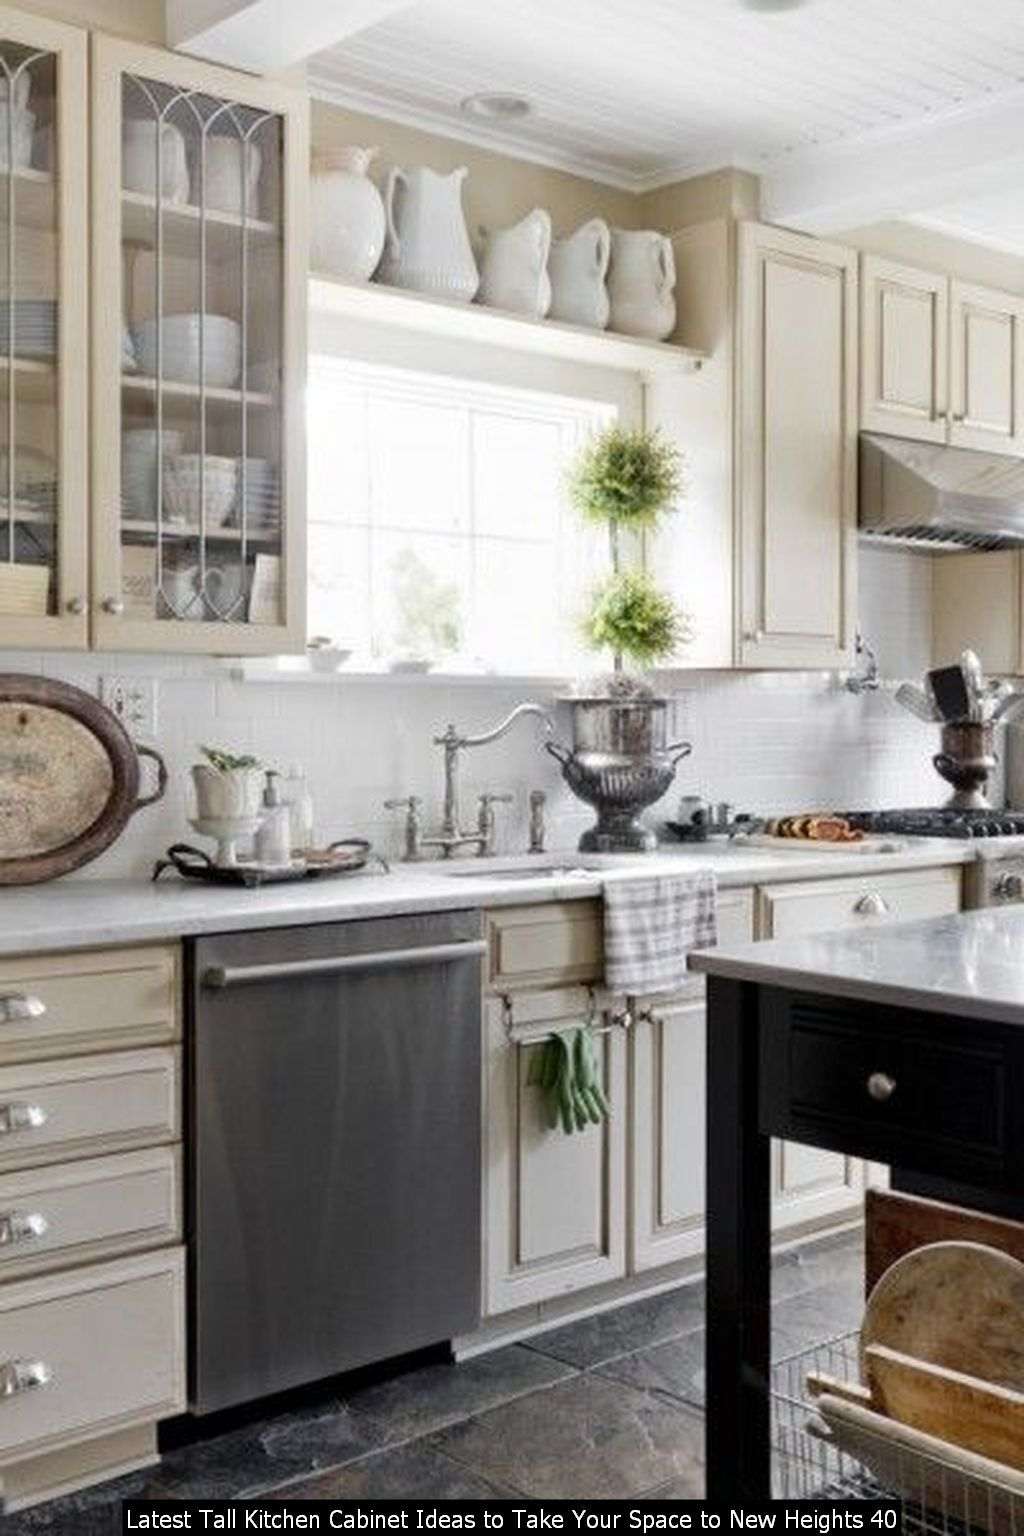 30 Latest Tall Kitchen Cabinet Ideas To Take Your Space To New Heights Kitchen Cabinet Design Tall Kitchen Cabinets Kitchen Decor